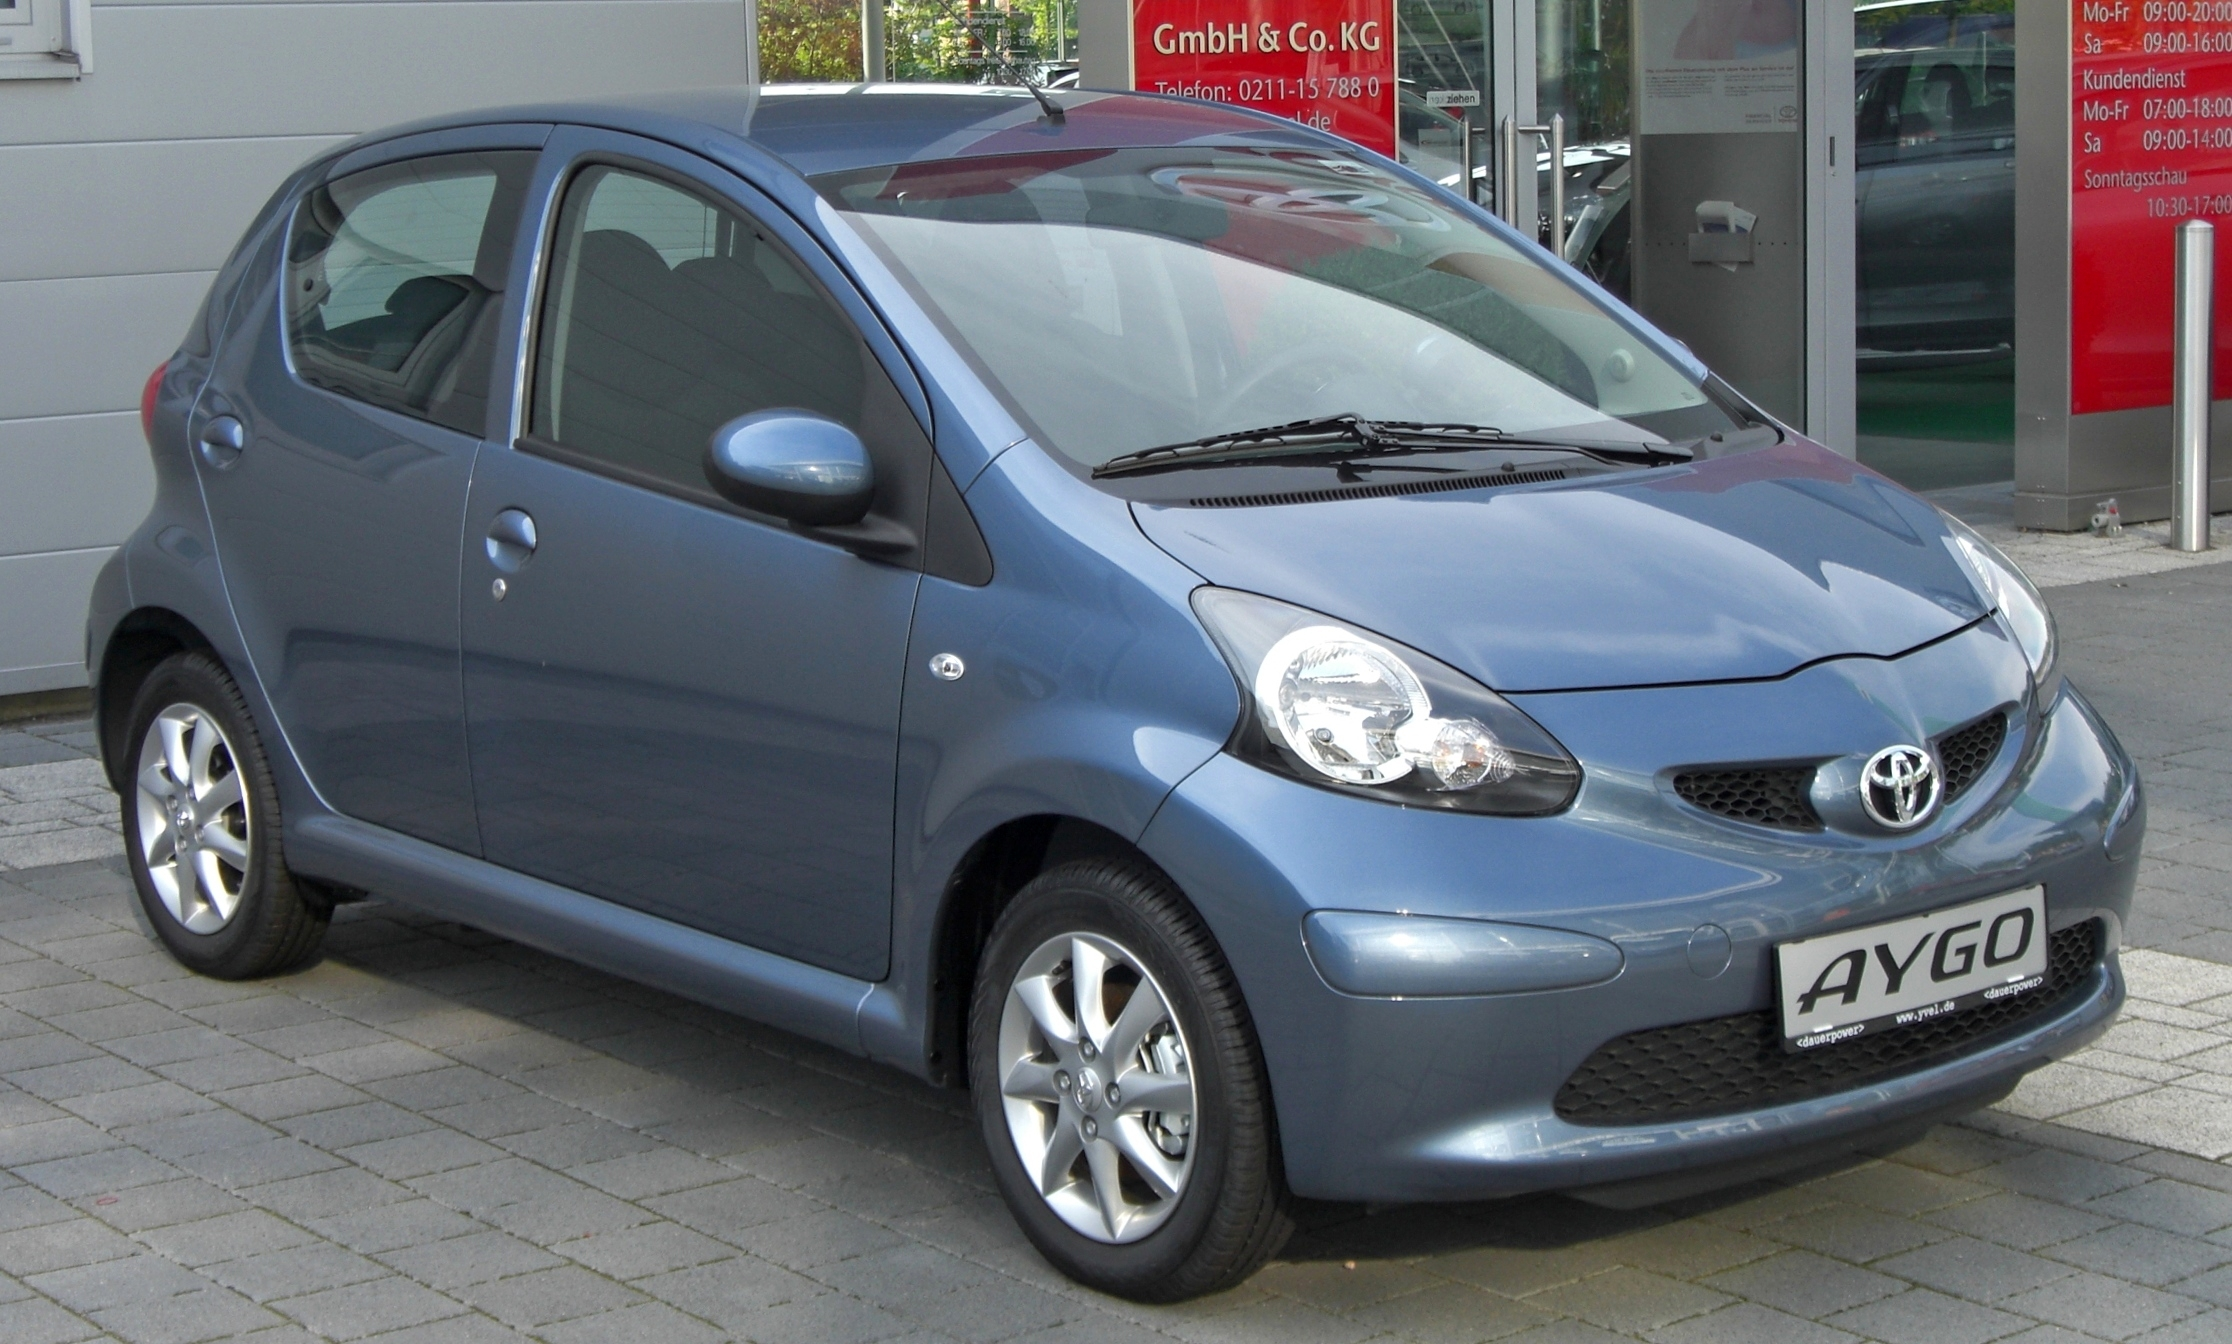 2006 toyota aygo pictures information and specs auto. Black Bedroom Furniture Sets. Home Design Ideas